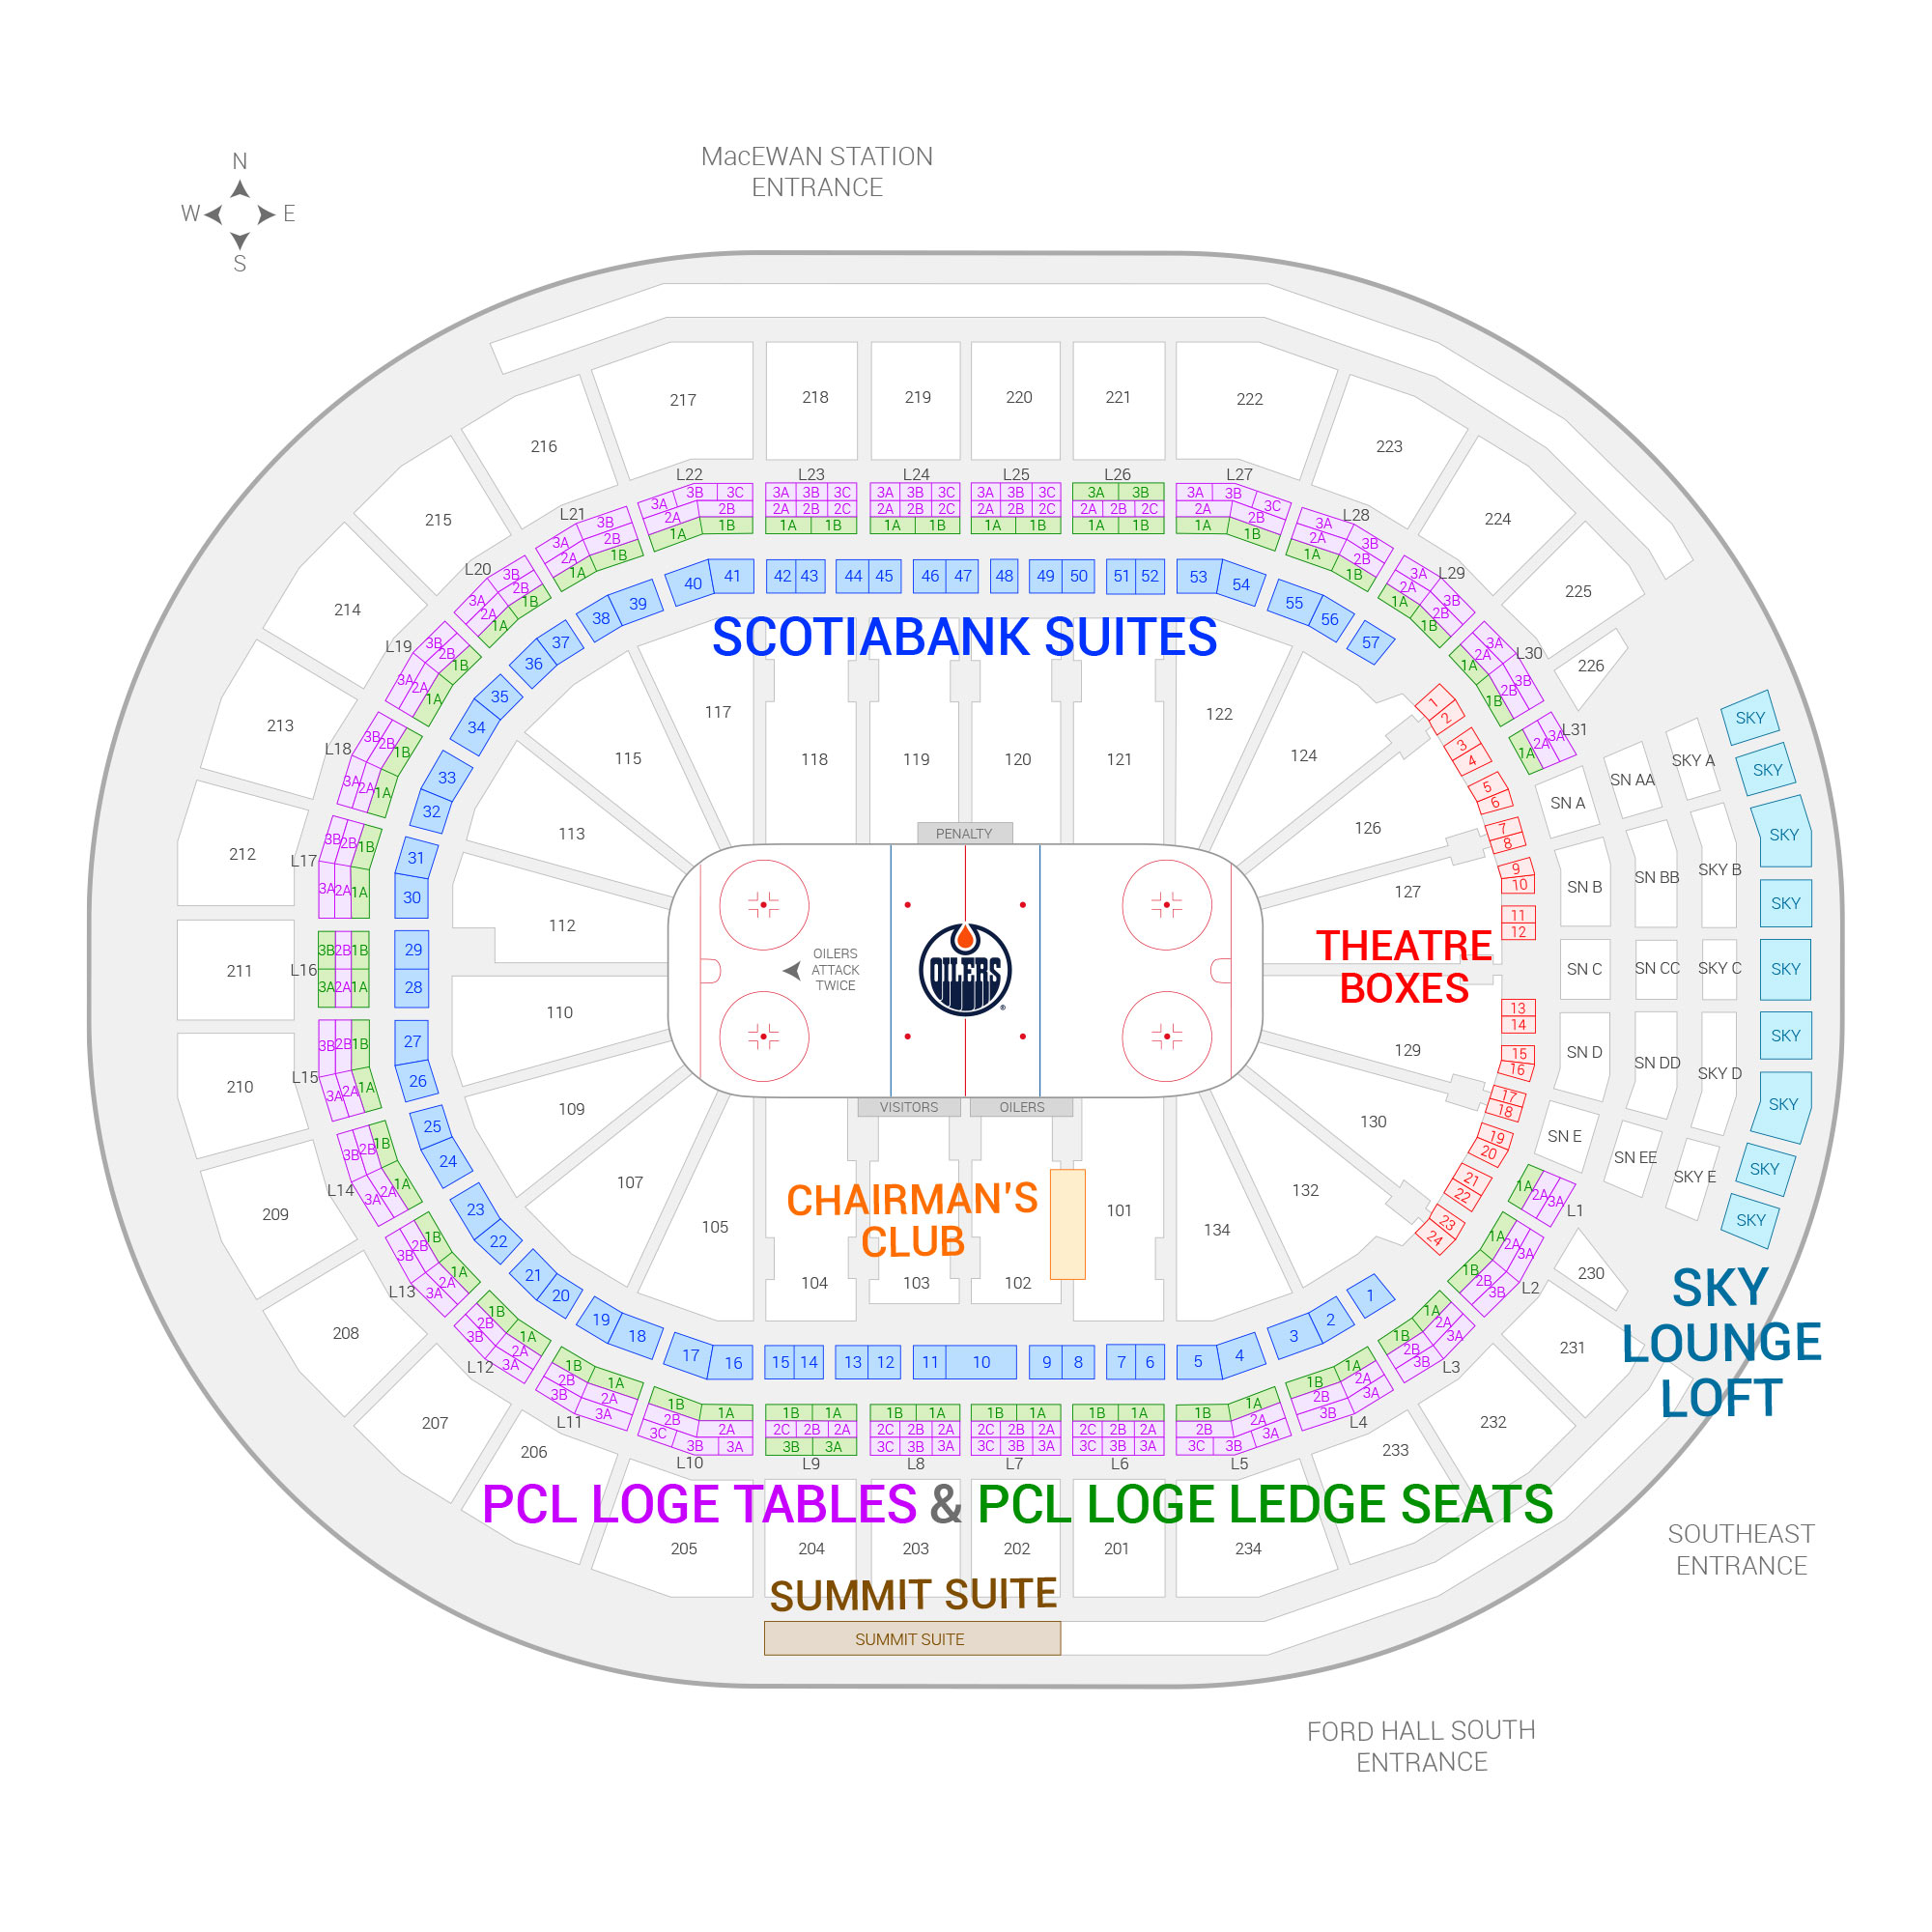 Rogers Place / Edmonton Oilers Suite Map and Seating Chart